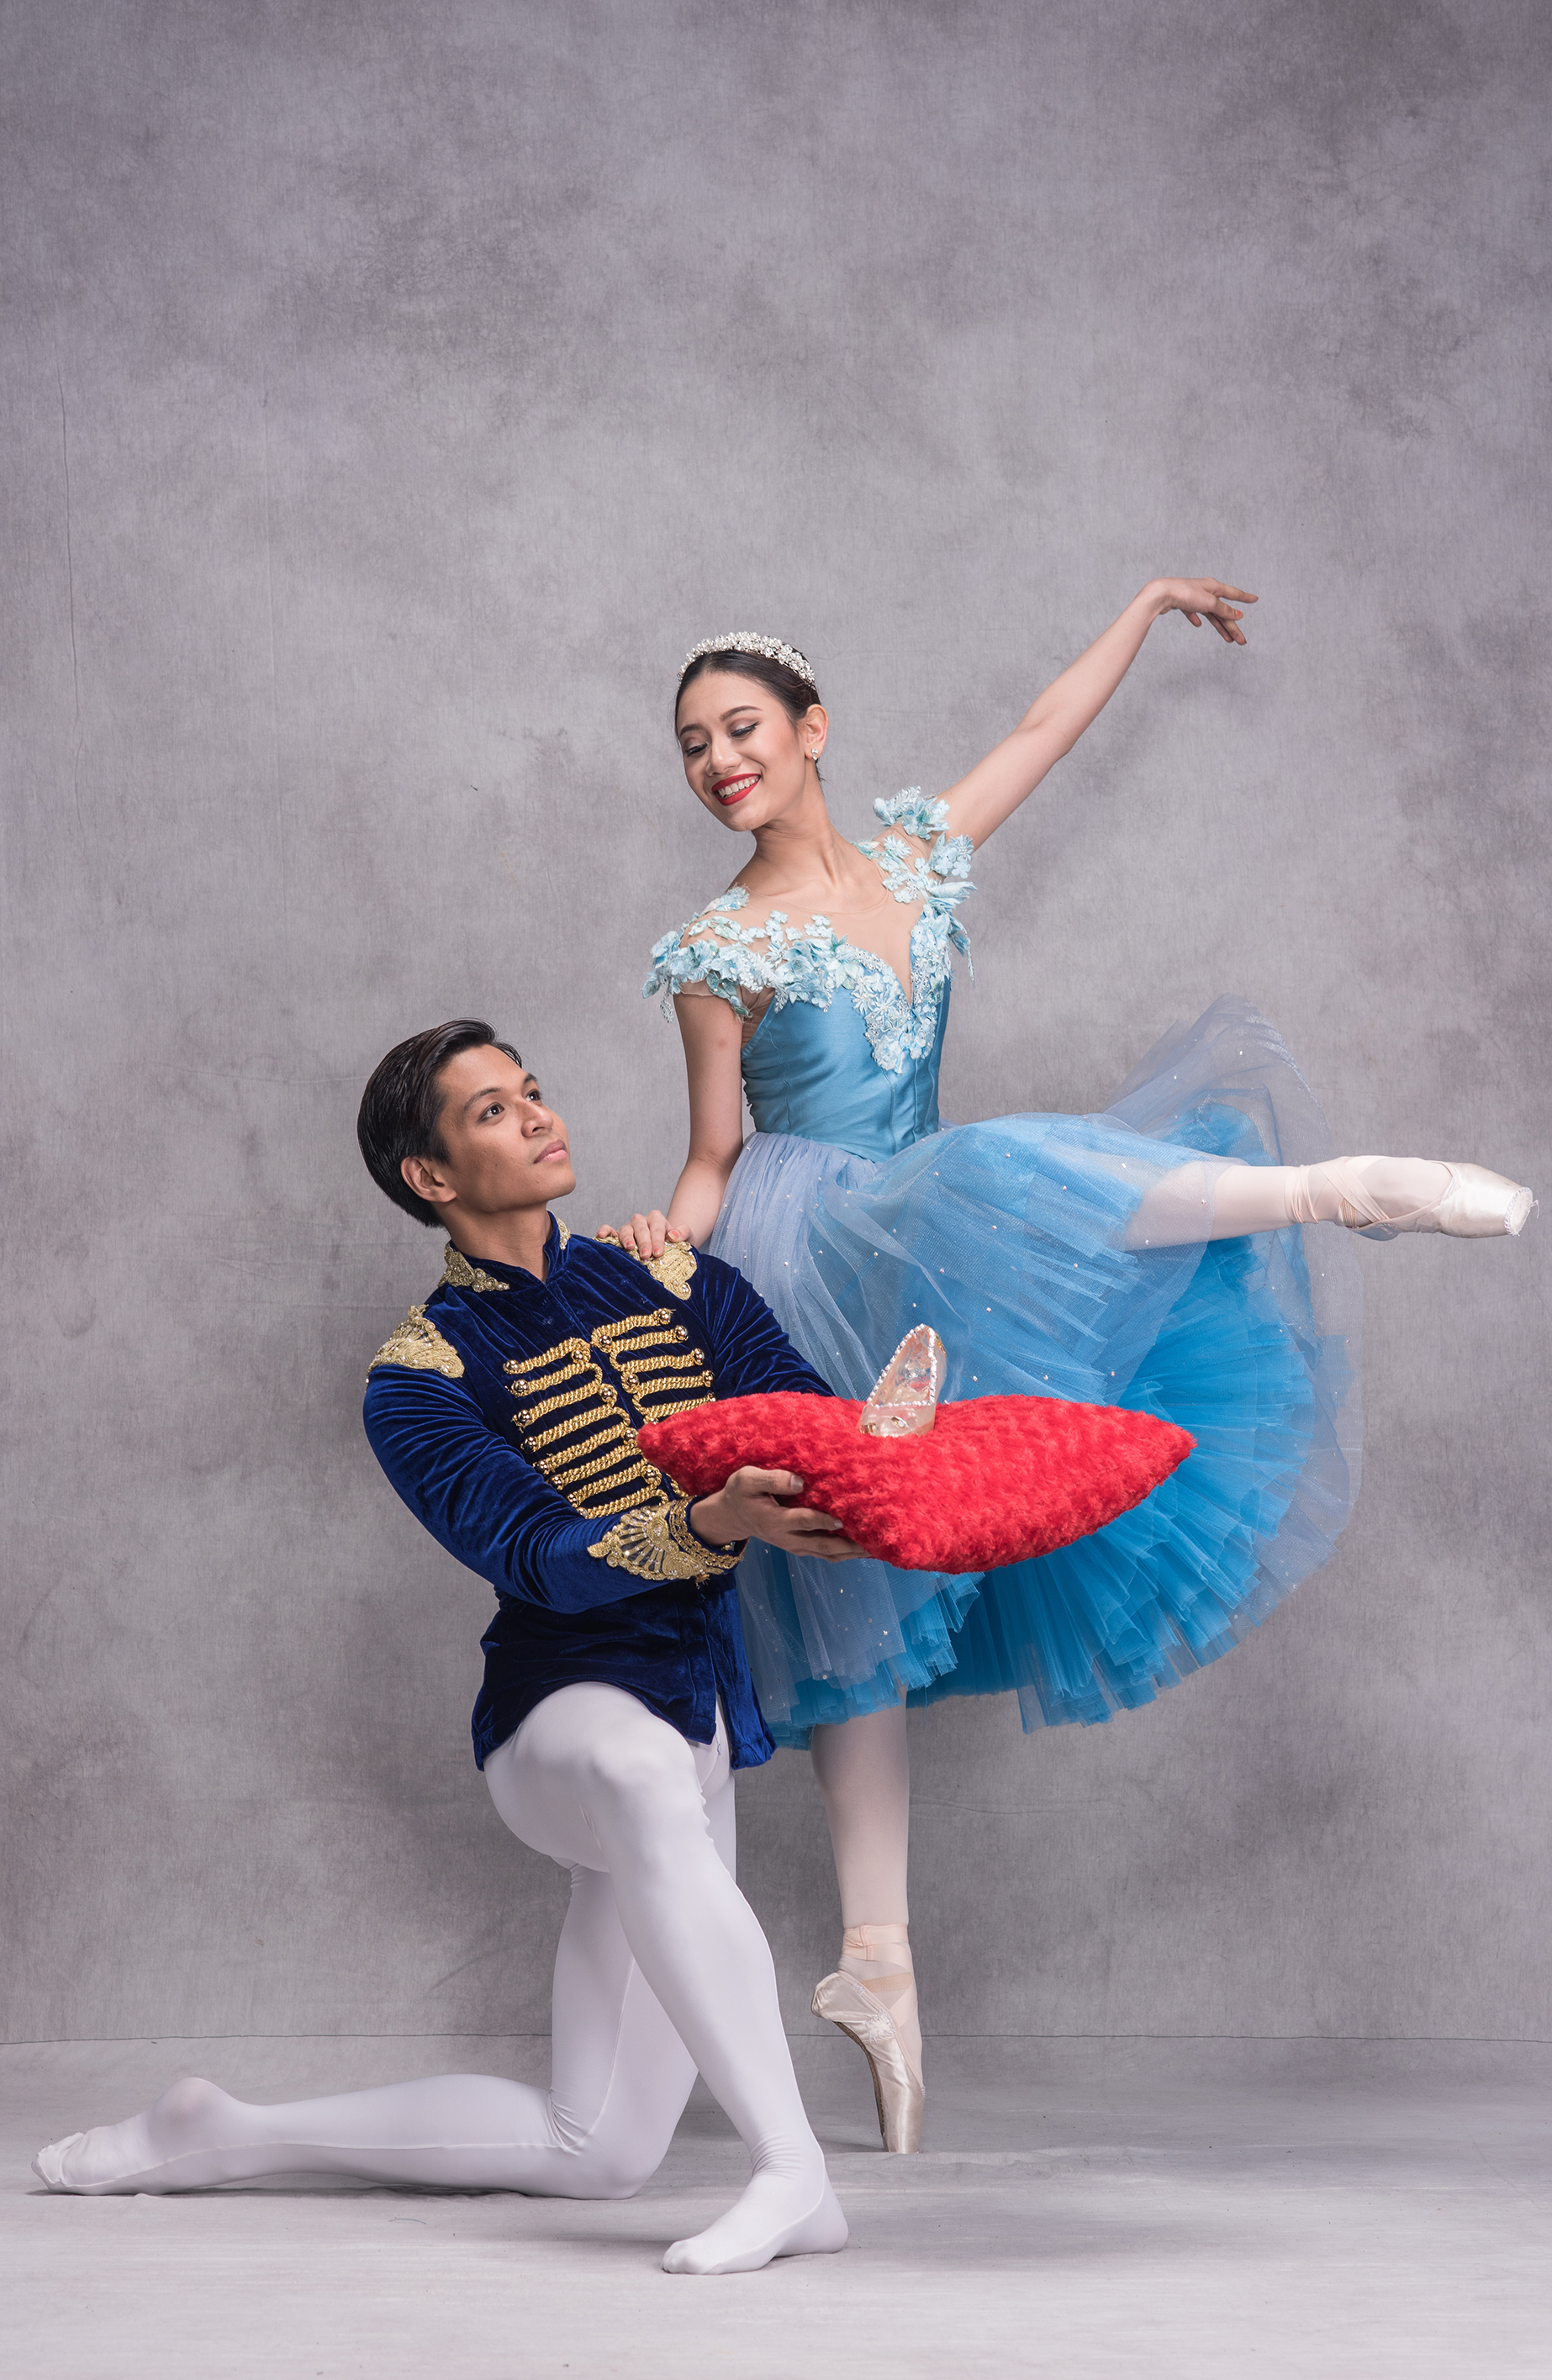 Cinderella was Abigail Oliveiro's favorite Disney princess as a little girl, so it was a thrill for her to play the character in 2016 with soloist Mark Sumaylo as her prince. Photo by Jojit Lorenzo